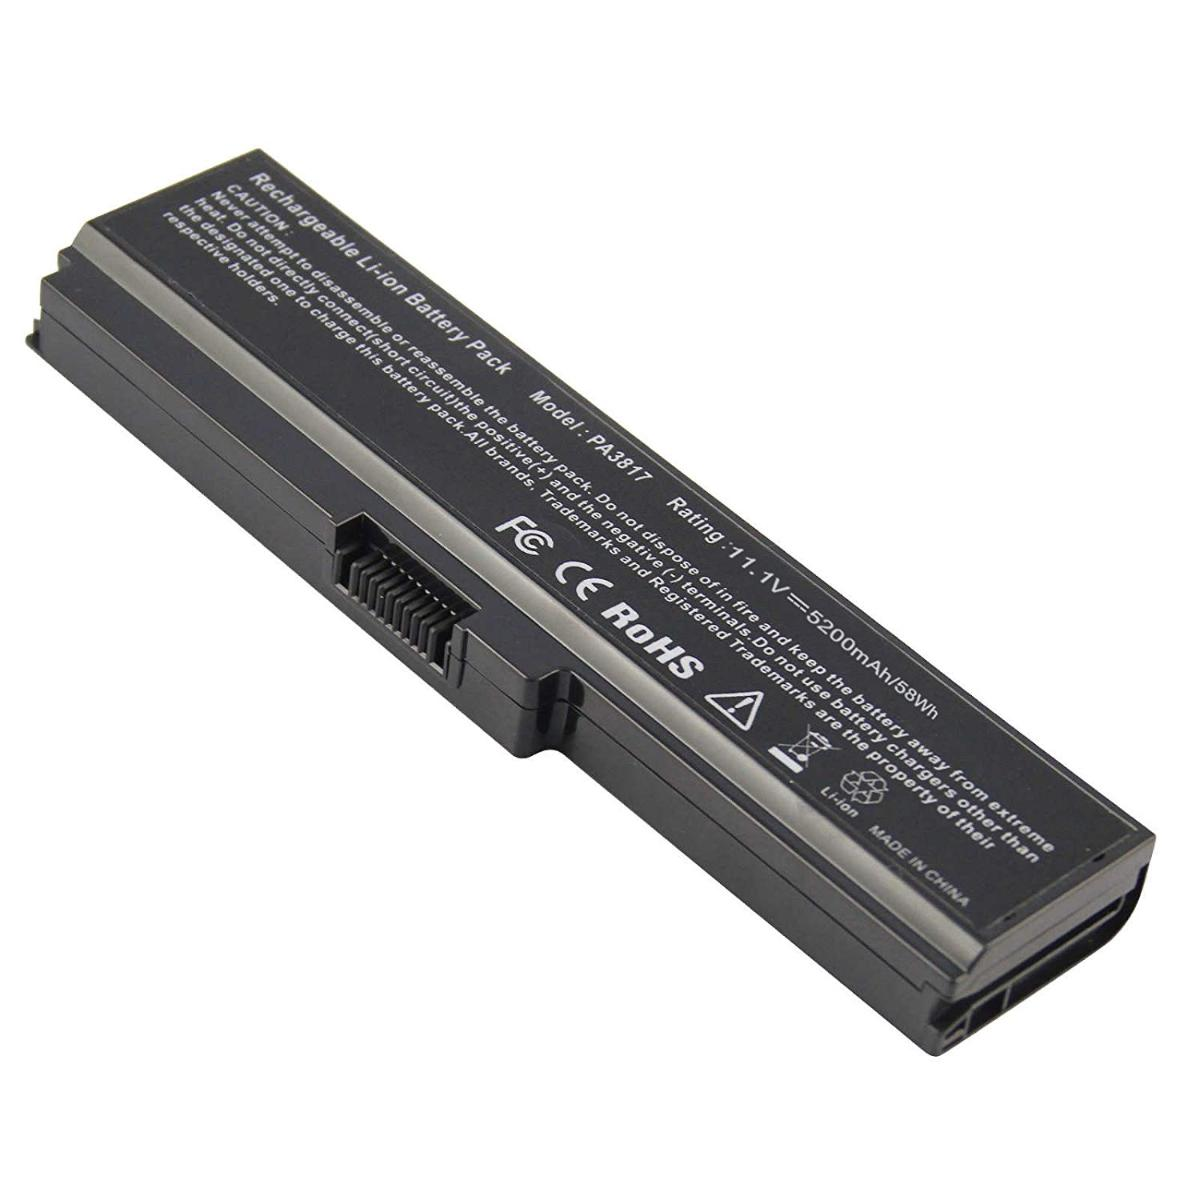 Μπαταρία Laptop - Battery for Toshiba Satellite U500-11D U500-11G U500-12C U500-119 U500-176 U500-178 U500-186 U500-ST5302 U500-ST5305 U500-ST5307 U500-ST6321 OEM Υψηλής ποιότητας (Κωδ.1-BAT0026)